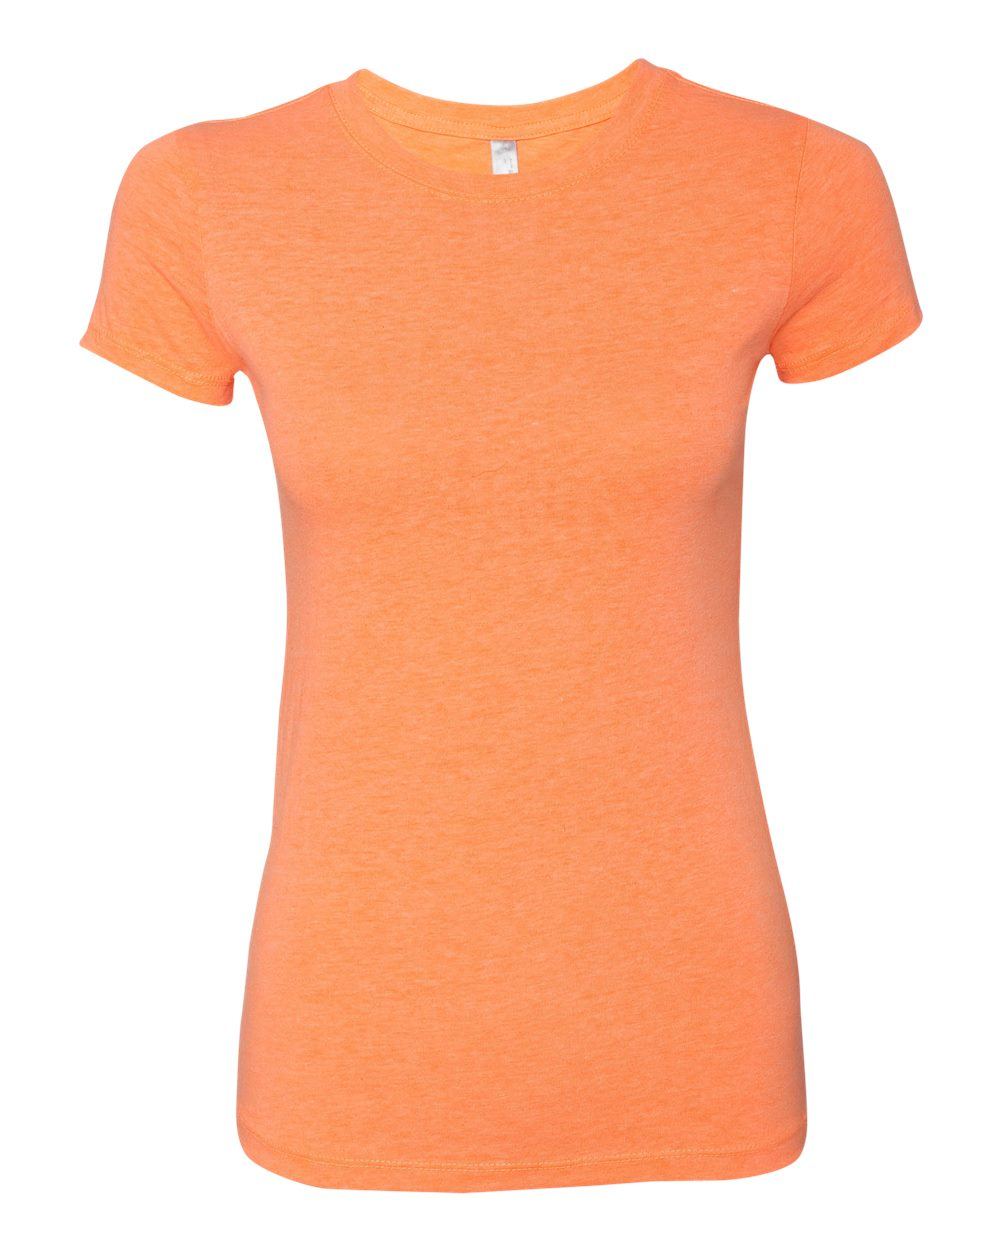 Next_Level_3300L_Neon_Heather_Orange_Front_High.jpg